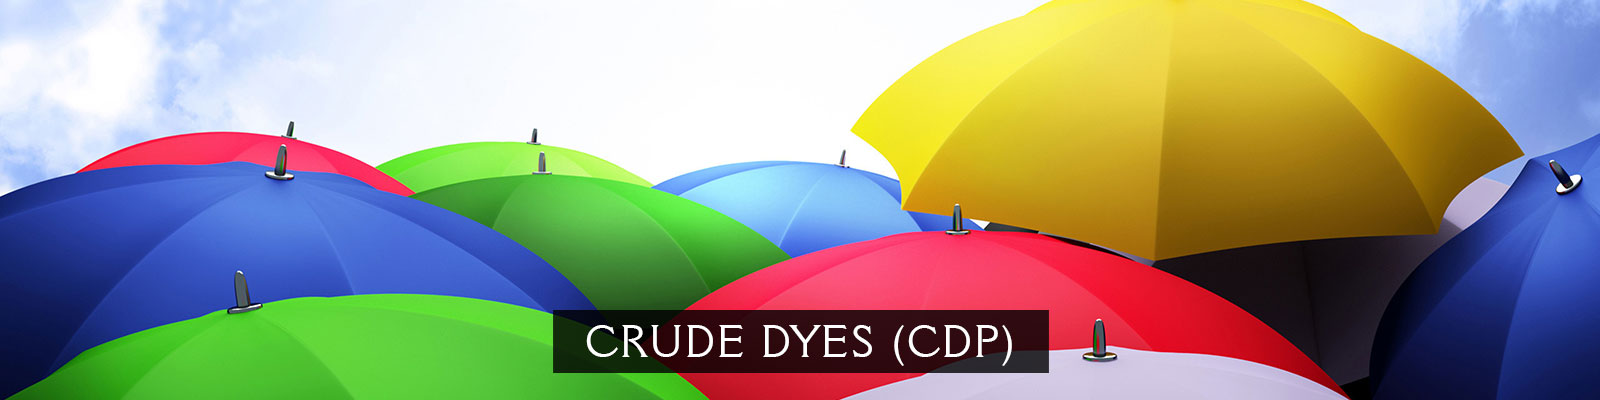 CRUDE DYES